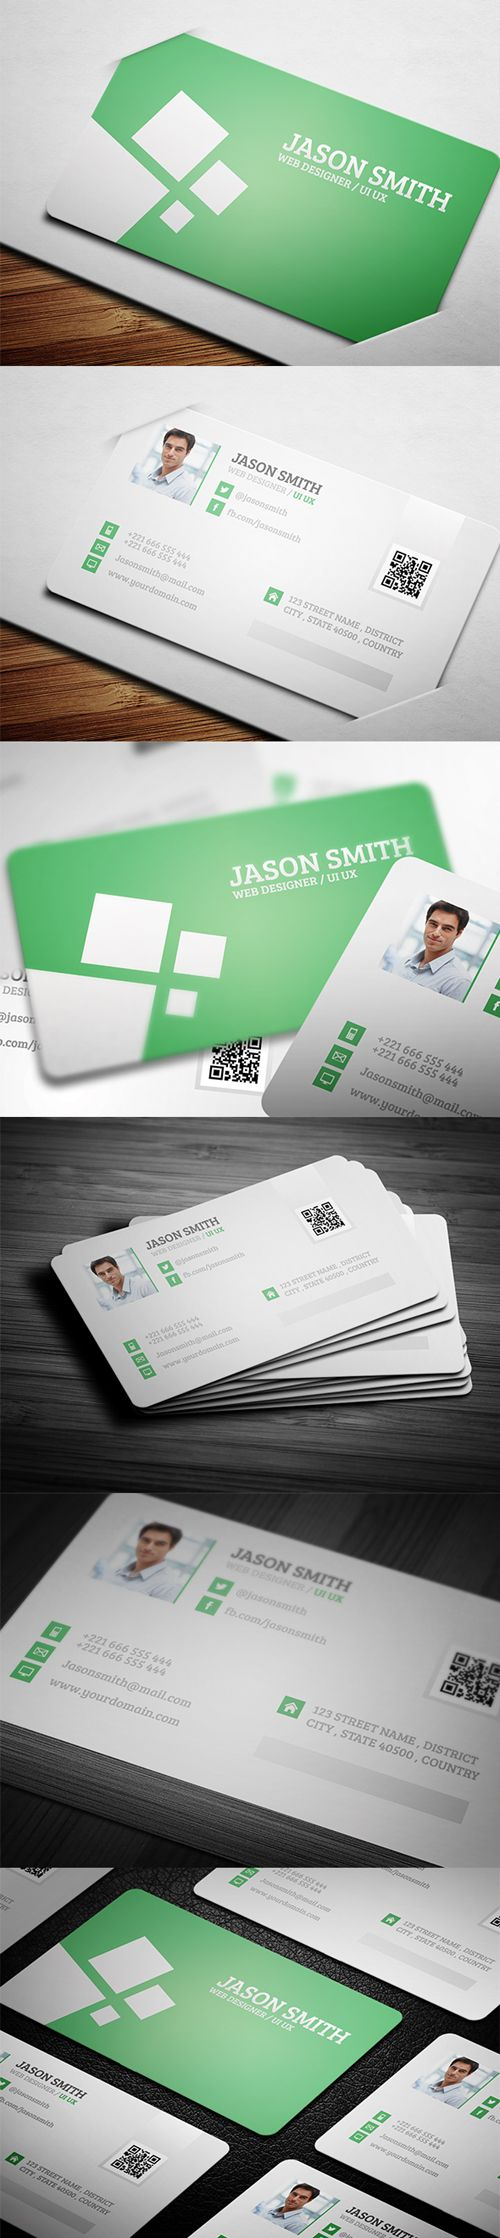 business cards template design - 5 #businesscards ...